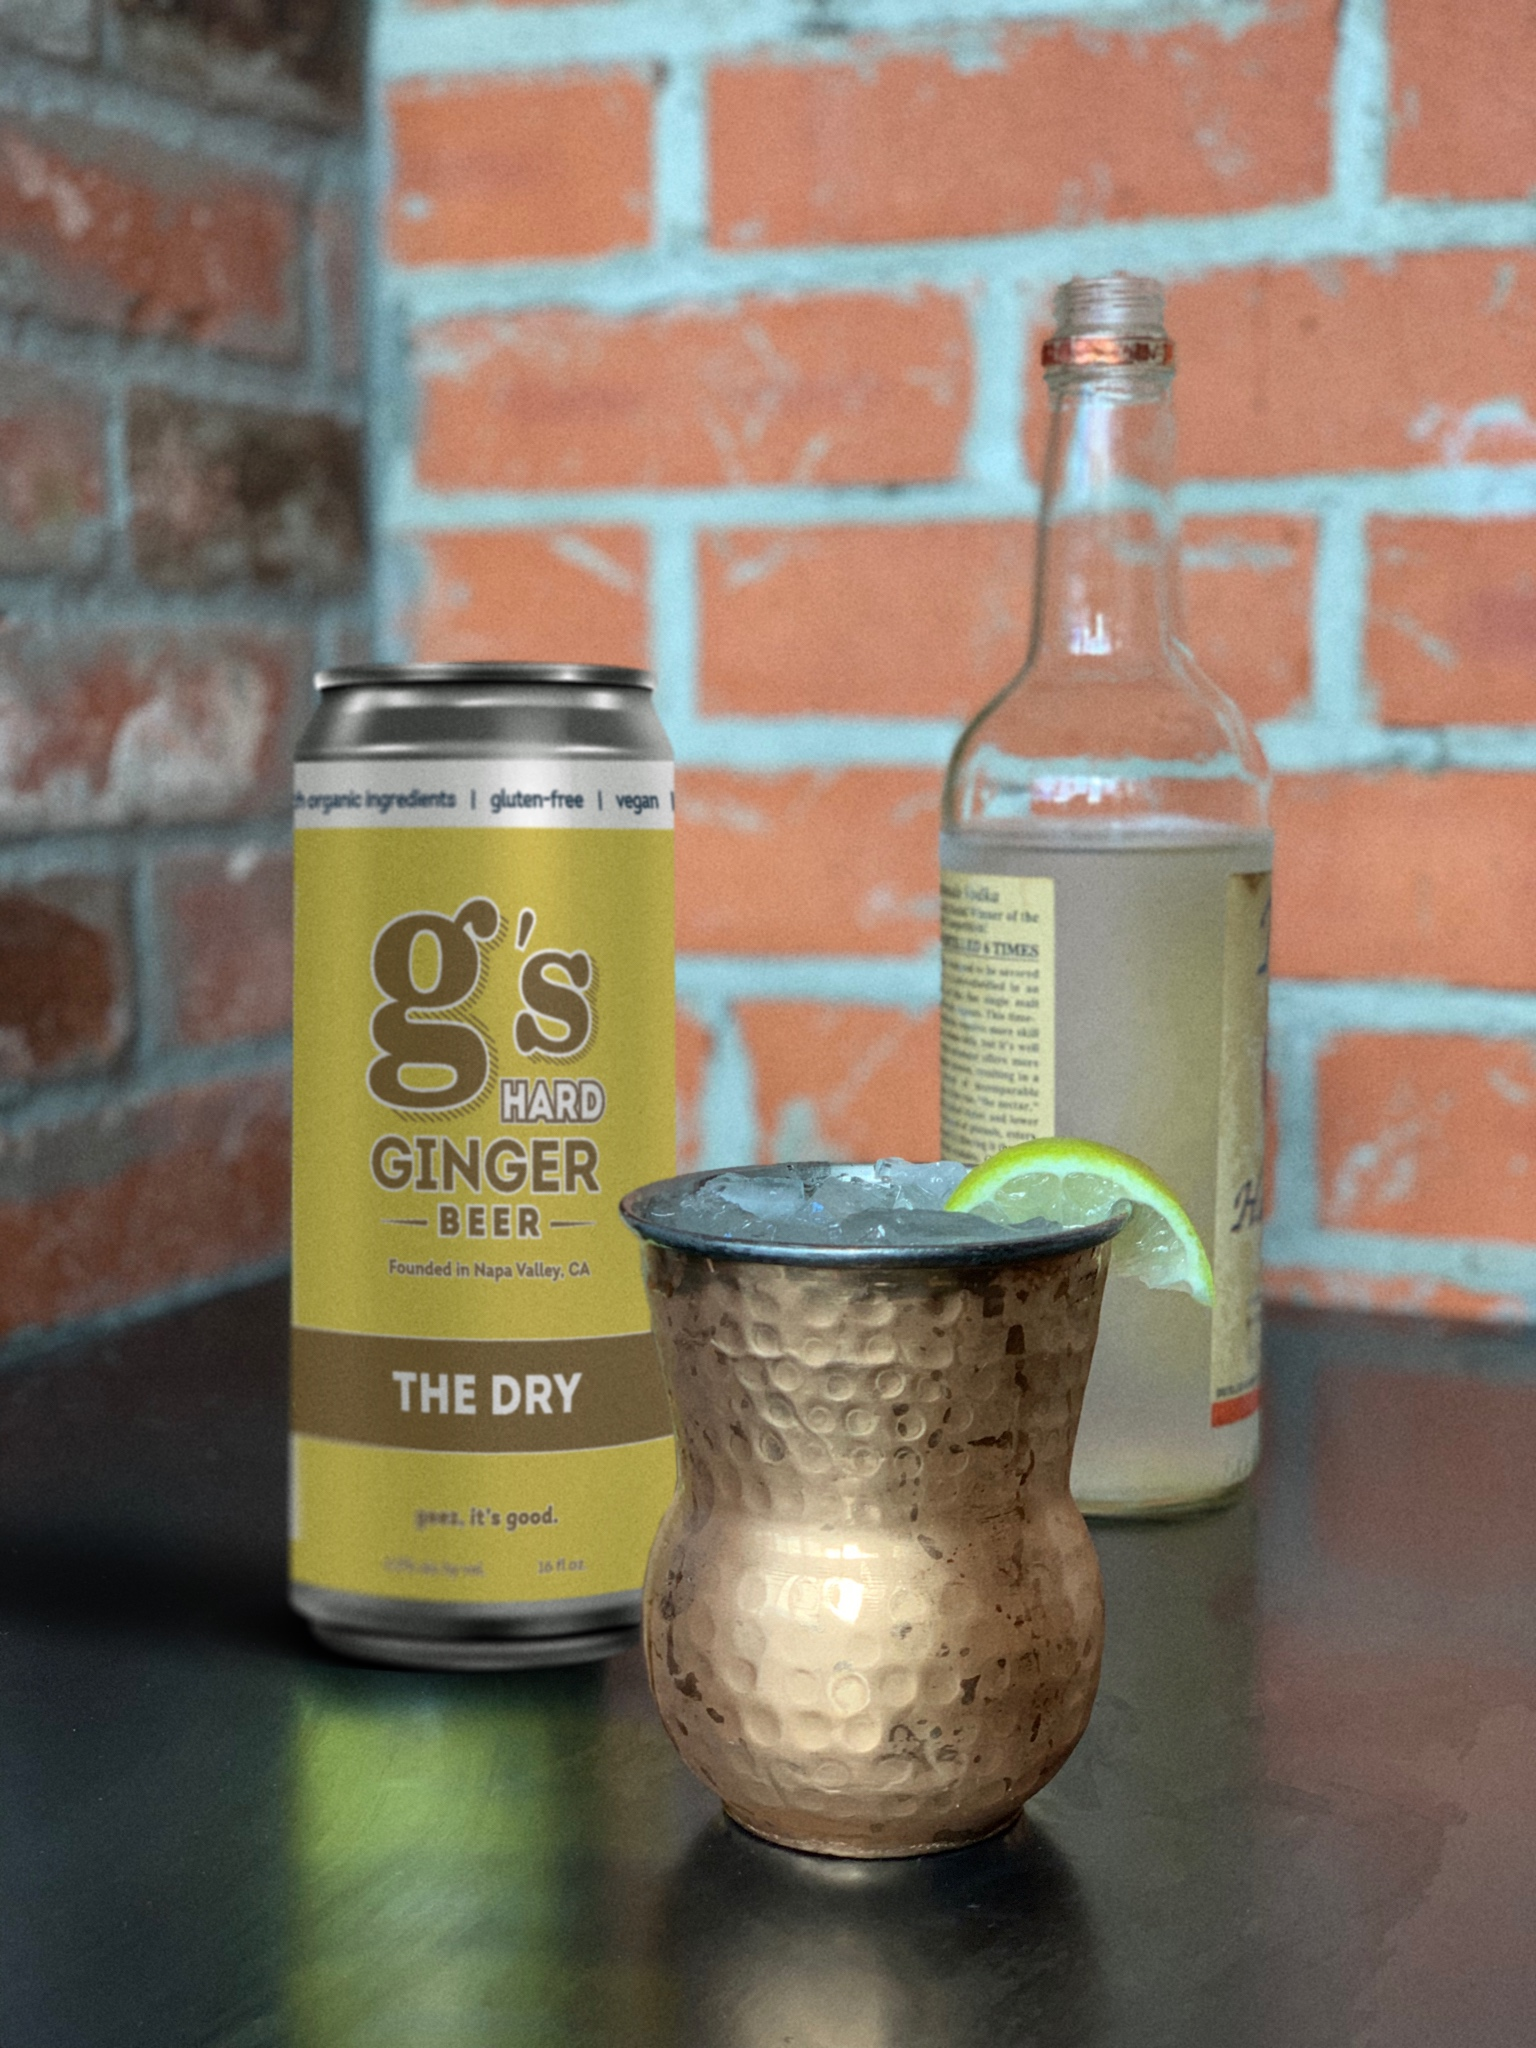 G's Moscow Mule - 1 & 1/2 oz Vodka4 oz G's THE DRY hard ginger beer1/2 oz Lime Juice1 oz Agave or Simple SyrupWedge of Lime and a Sprig of MintHOW TO: With crushed ice in your mule mug or mason jar, add Vodka, G's THE DRY hard ginger beer, lime juice, and agave or simple syrup - stir and enjoy!Simple, sessionable, super tasty._________________________________G's THE DRY hard ginger beer is brewed with fresh organic ginger root and a complimenting profile of Meyer Lemon. It's fermented till dry, so no residual and no added sugar. Yes, 0 grams! (and none of that fake sweetener stuff either.) The perfect mixer for Kentucky, Gin, Moscow Mule's or your go-to cocktail recipe.